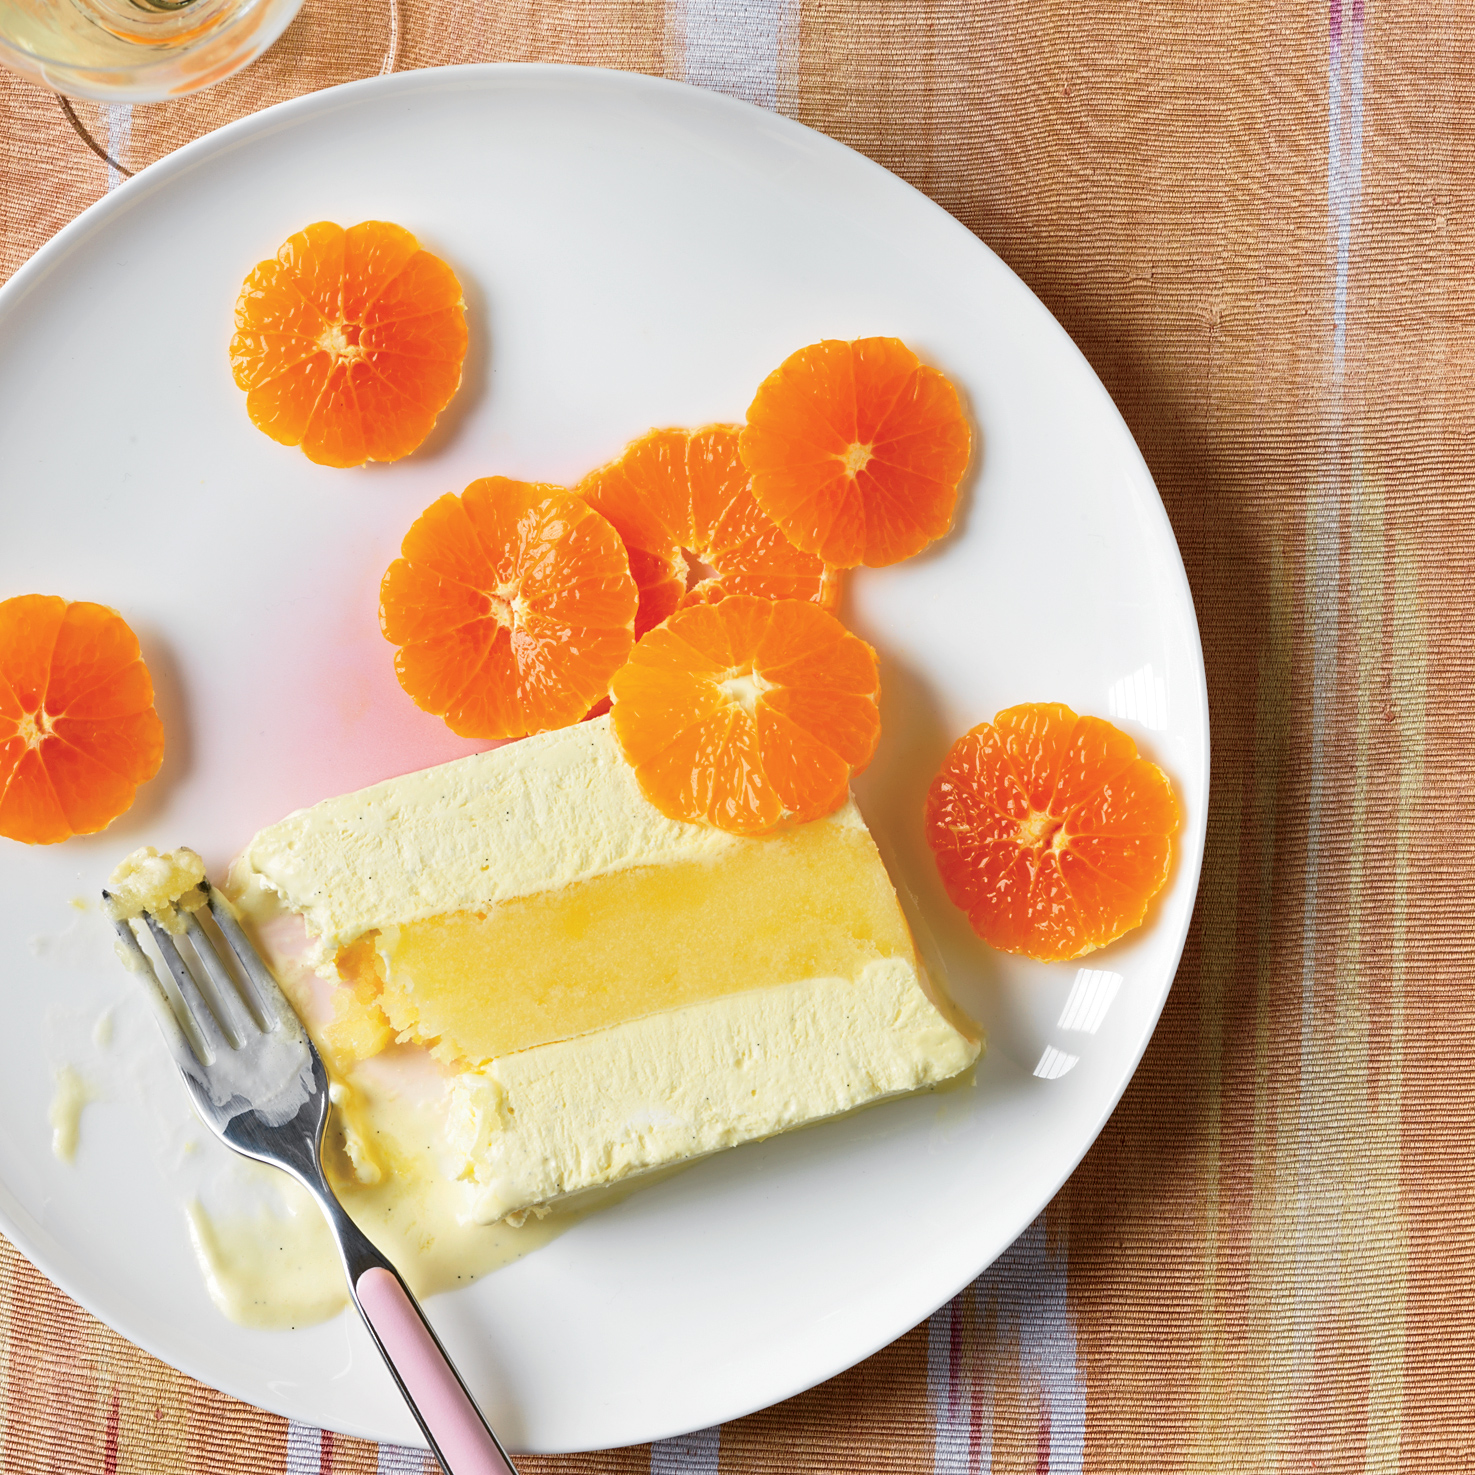 201205-xl-vanilla-semifreddo-and-orange-sorbet-terrine.jpg